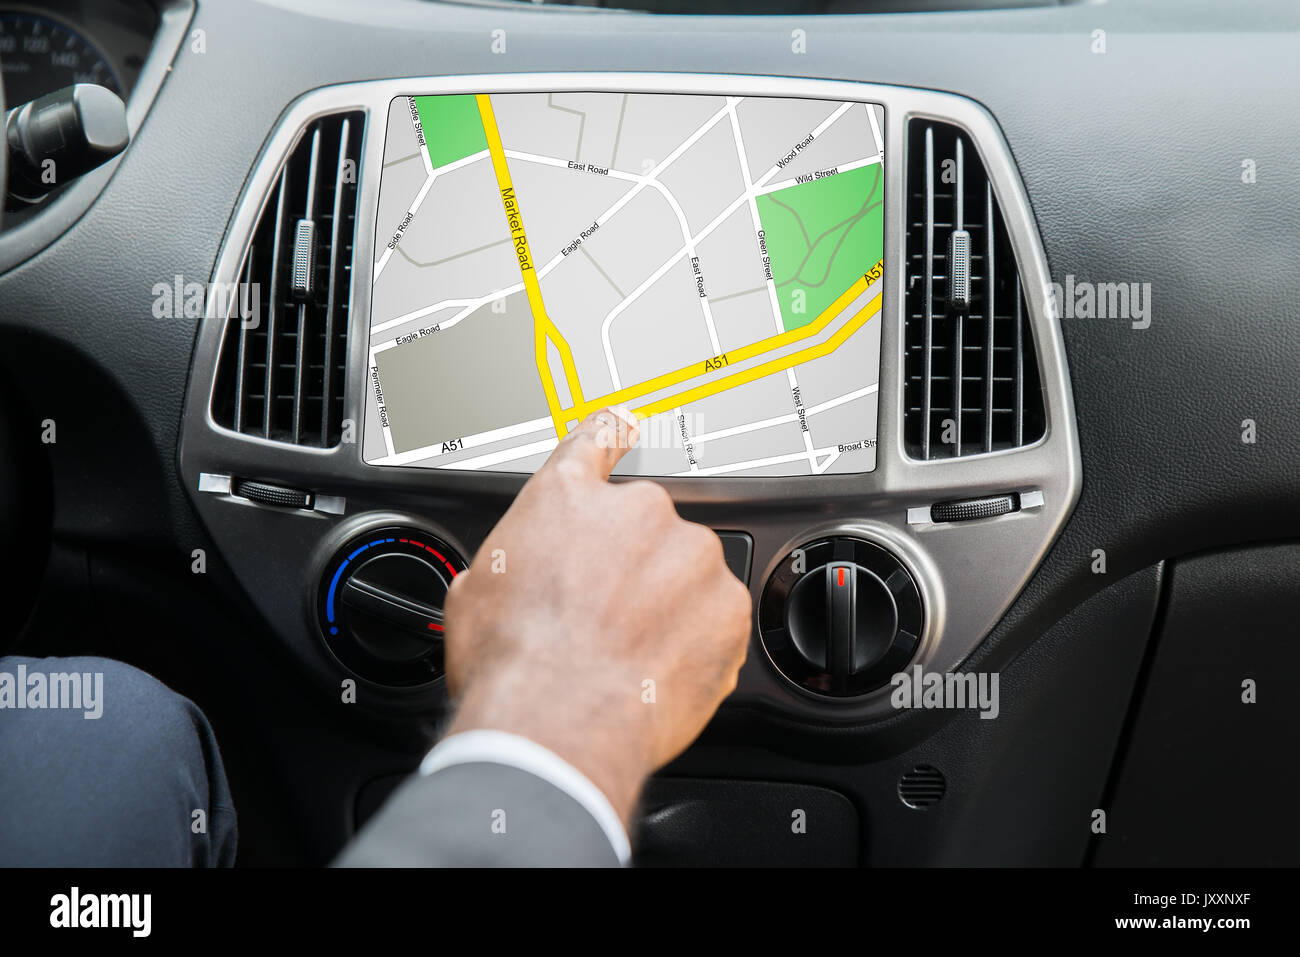 Close-up Of Person's Hand Using GPS Navigation System In Car - Stock Image